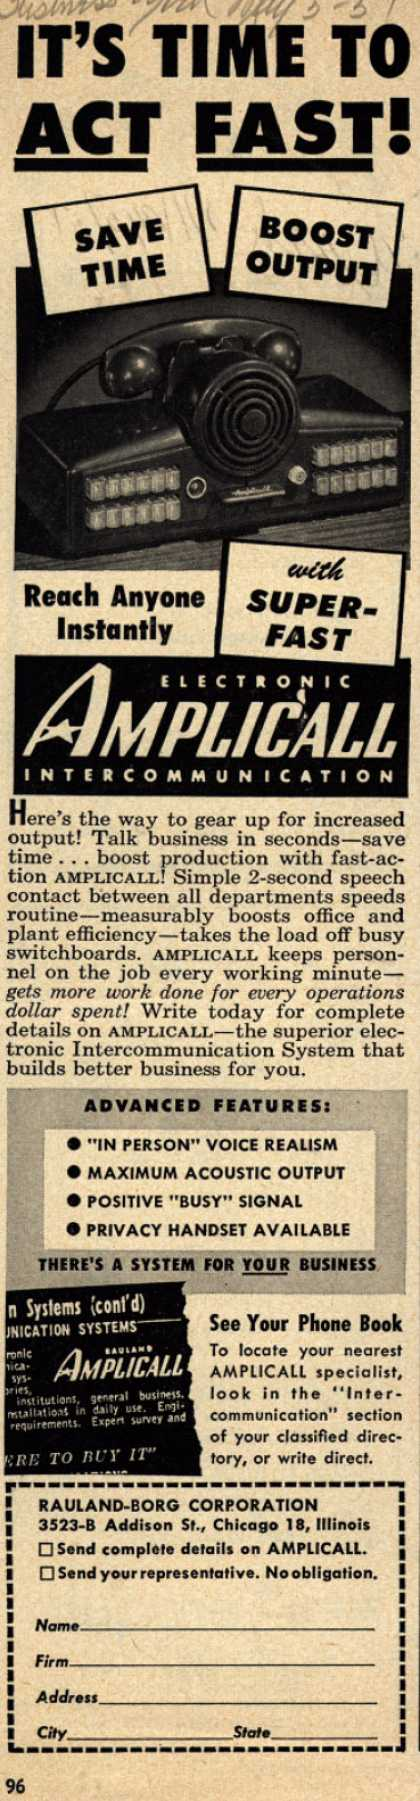 Rauland-Borg Corporation's Amplicall Intercomm – It's Time to Act Fast (1951)